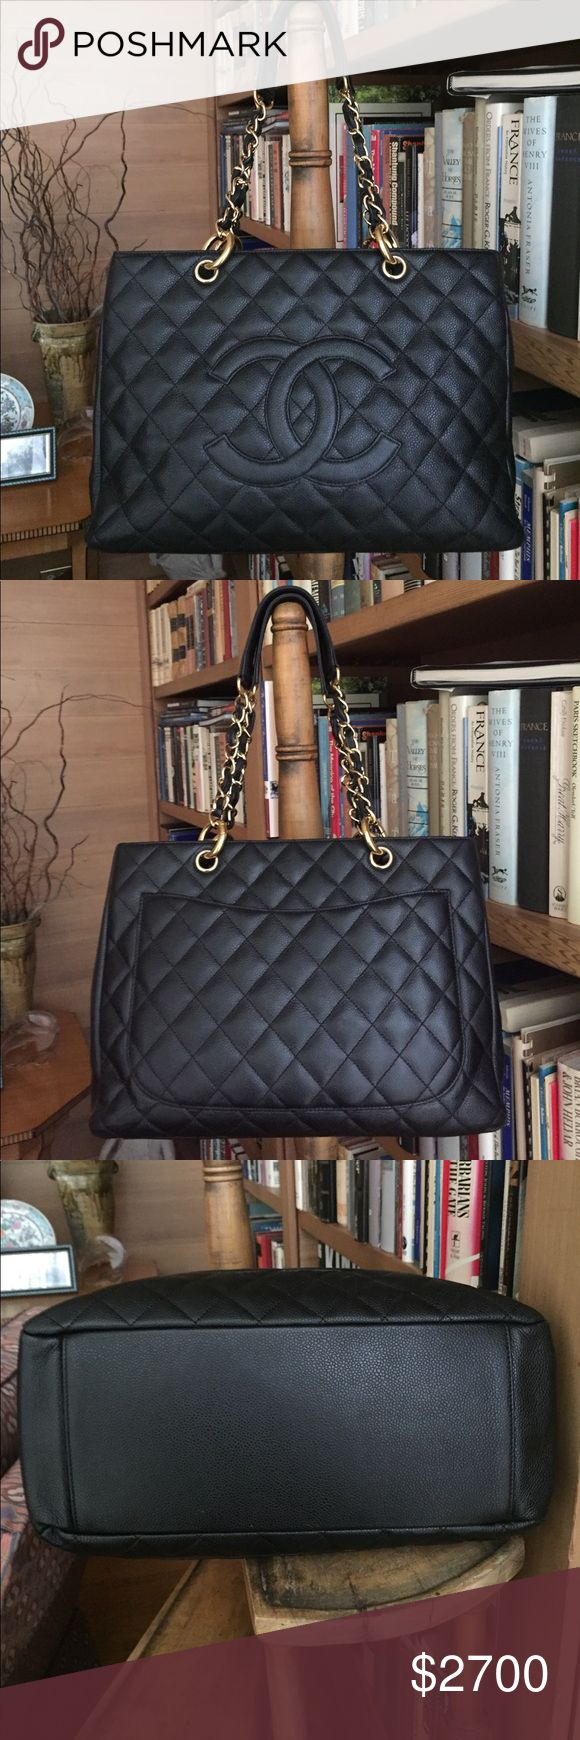 Authentic CHANEL Grand Shopper w dust bag Authentic CHANEL Grand Shopper black with gold hardware - in excellent condition - no scratches or stains - comes with dust bag and authenticity card - no risk because authentication will be verified by Poshmark - purchased at CHANEL store in Chicago - will negotiate - no lowballs please CHANEL Bags Shoulder Bags